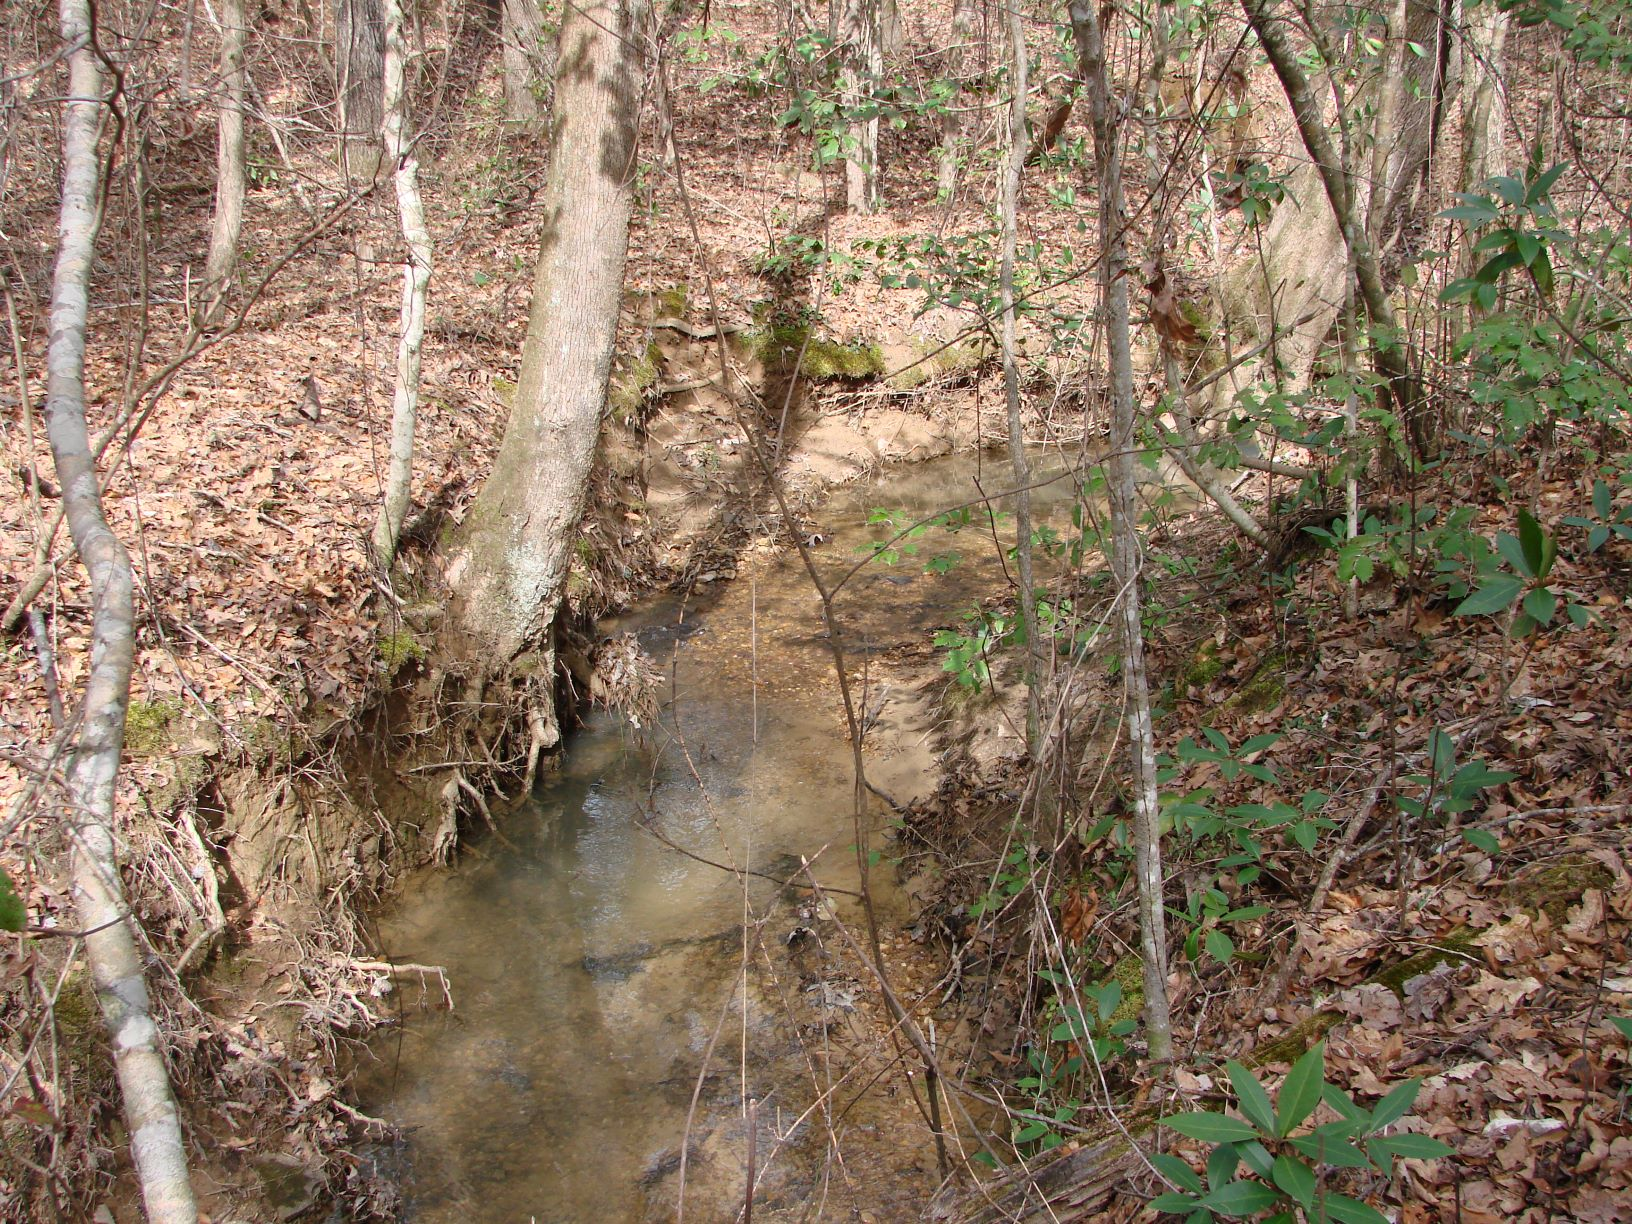 There are about a mile of small creeks like this on the property